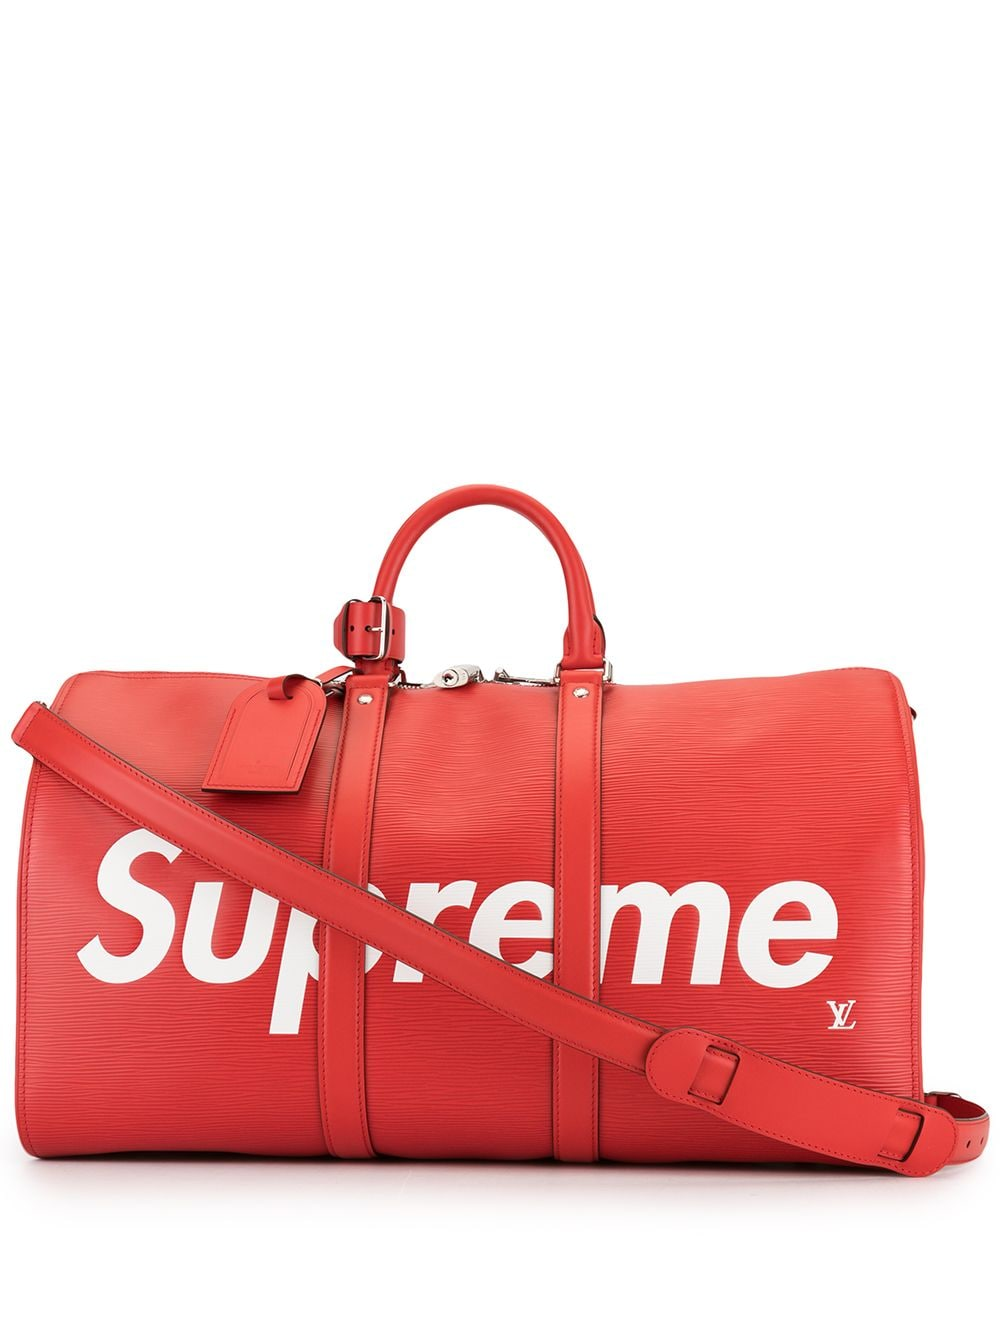 Louis Vuitton Pre-owned Louis Vuitton x Supreme Keepall Bandoulière Reisetasche, 45cm - Rot